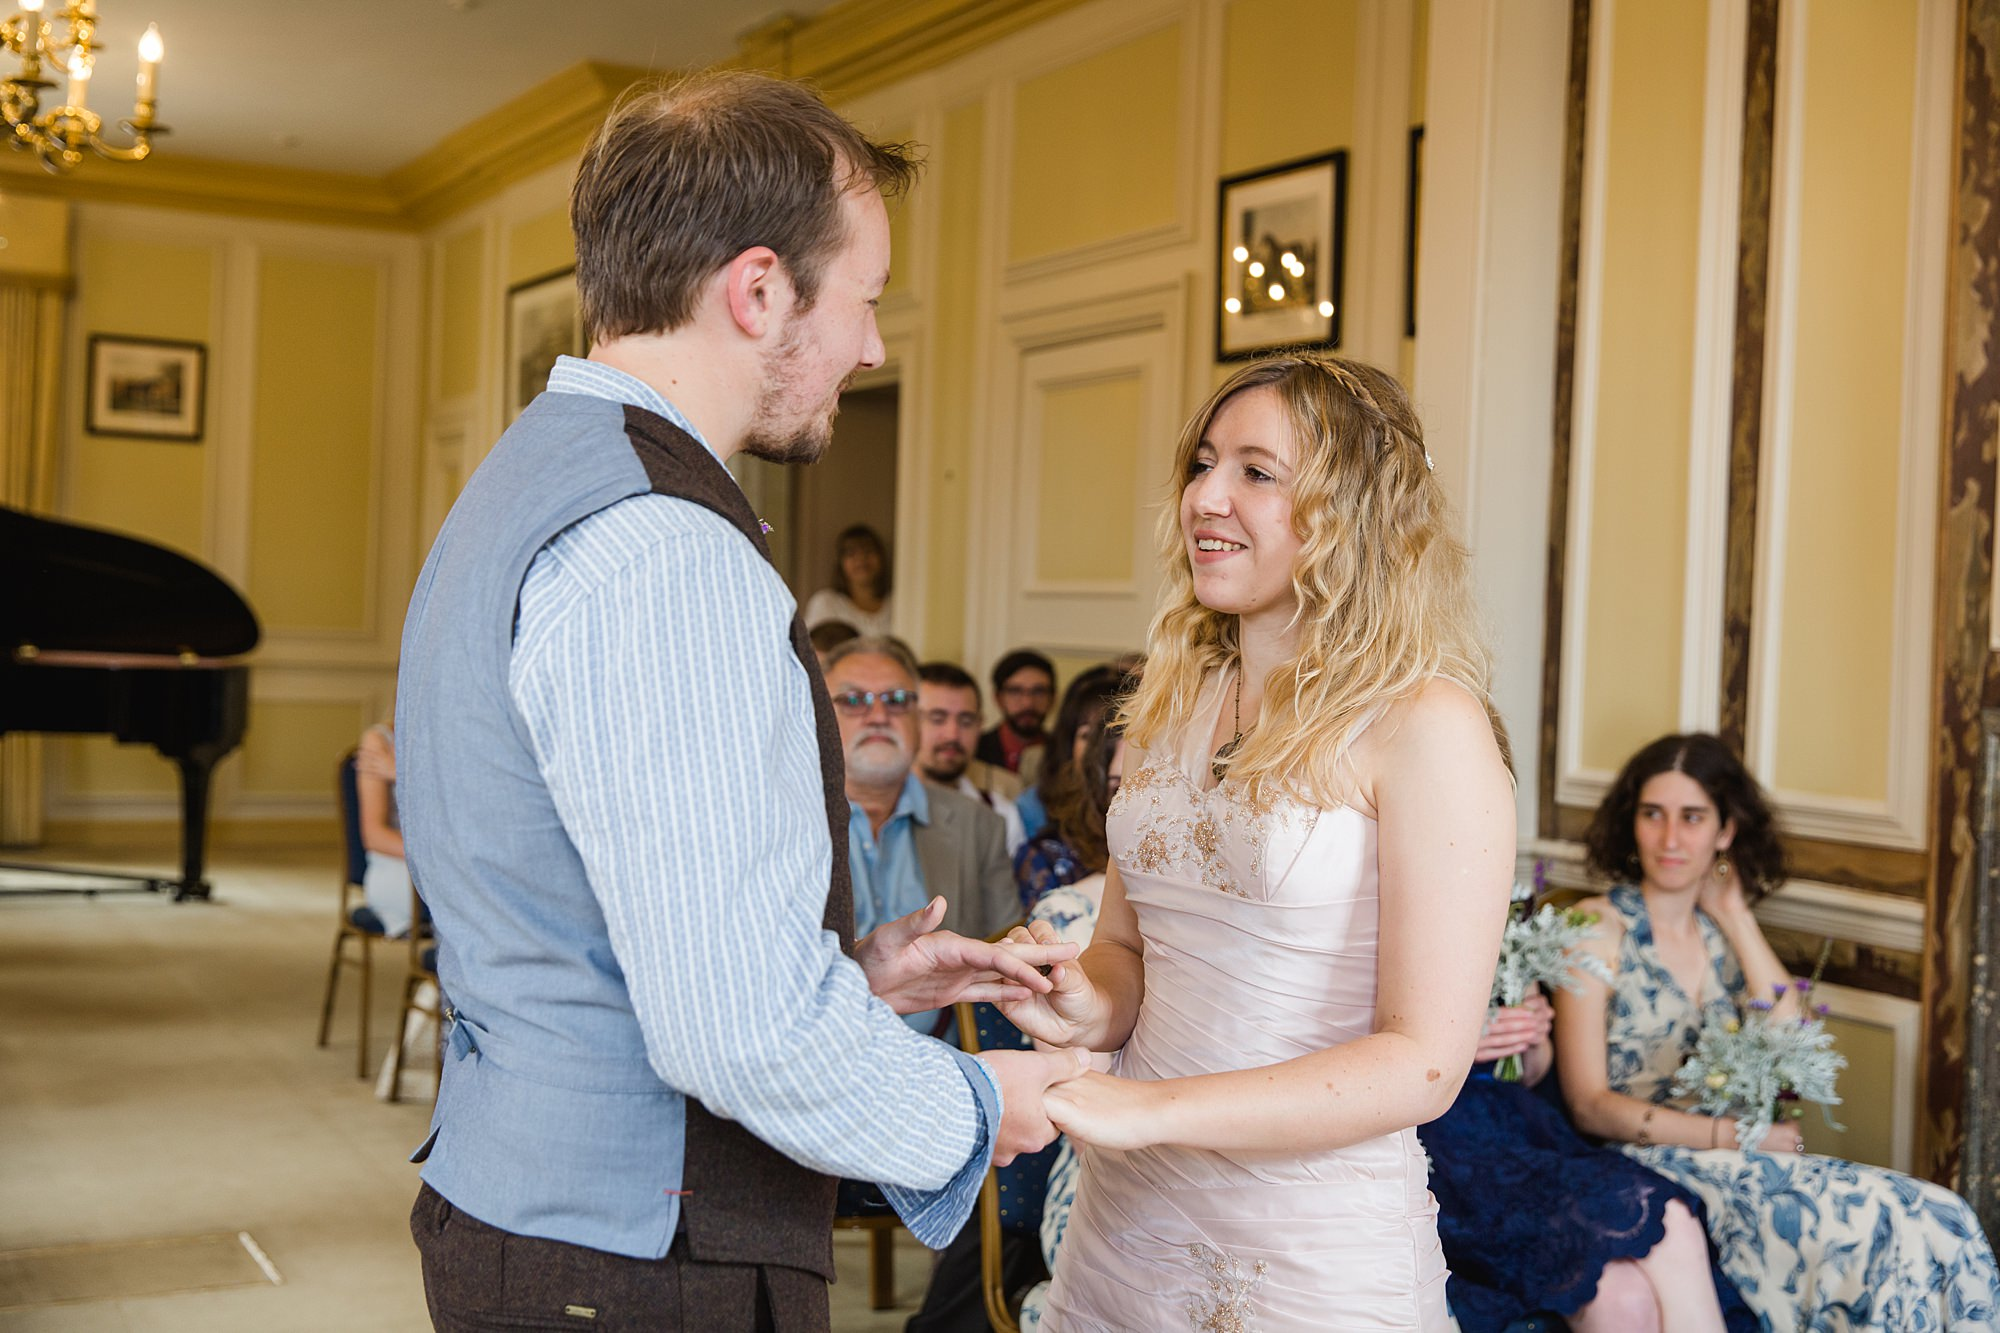 Fun village hall wedding bride and groom say vows at wedding ceremony